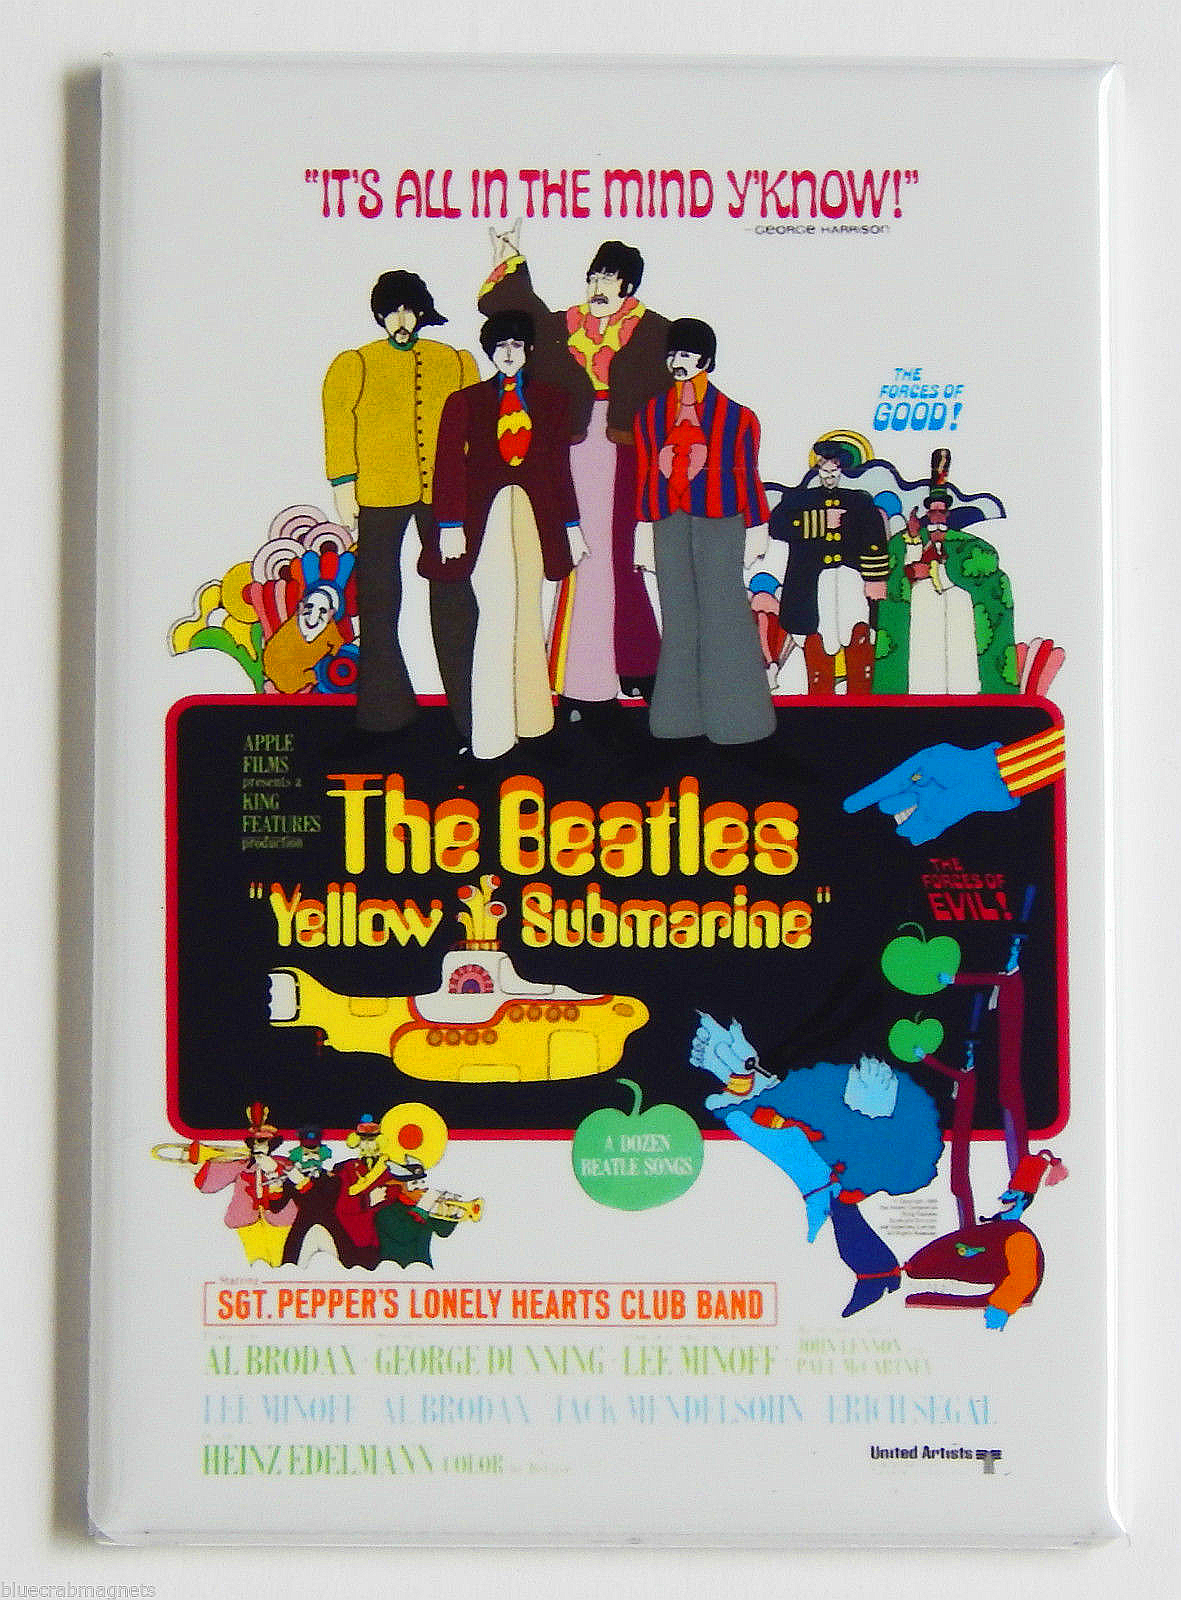 The Beatles Yellow Submarine Movie Poster Magnet 2x3 inches Blue Meanies RARE OP